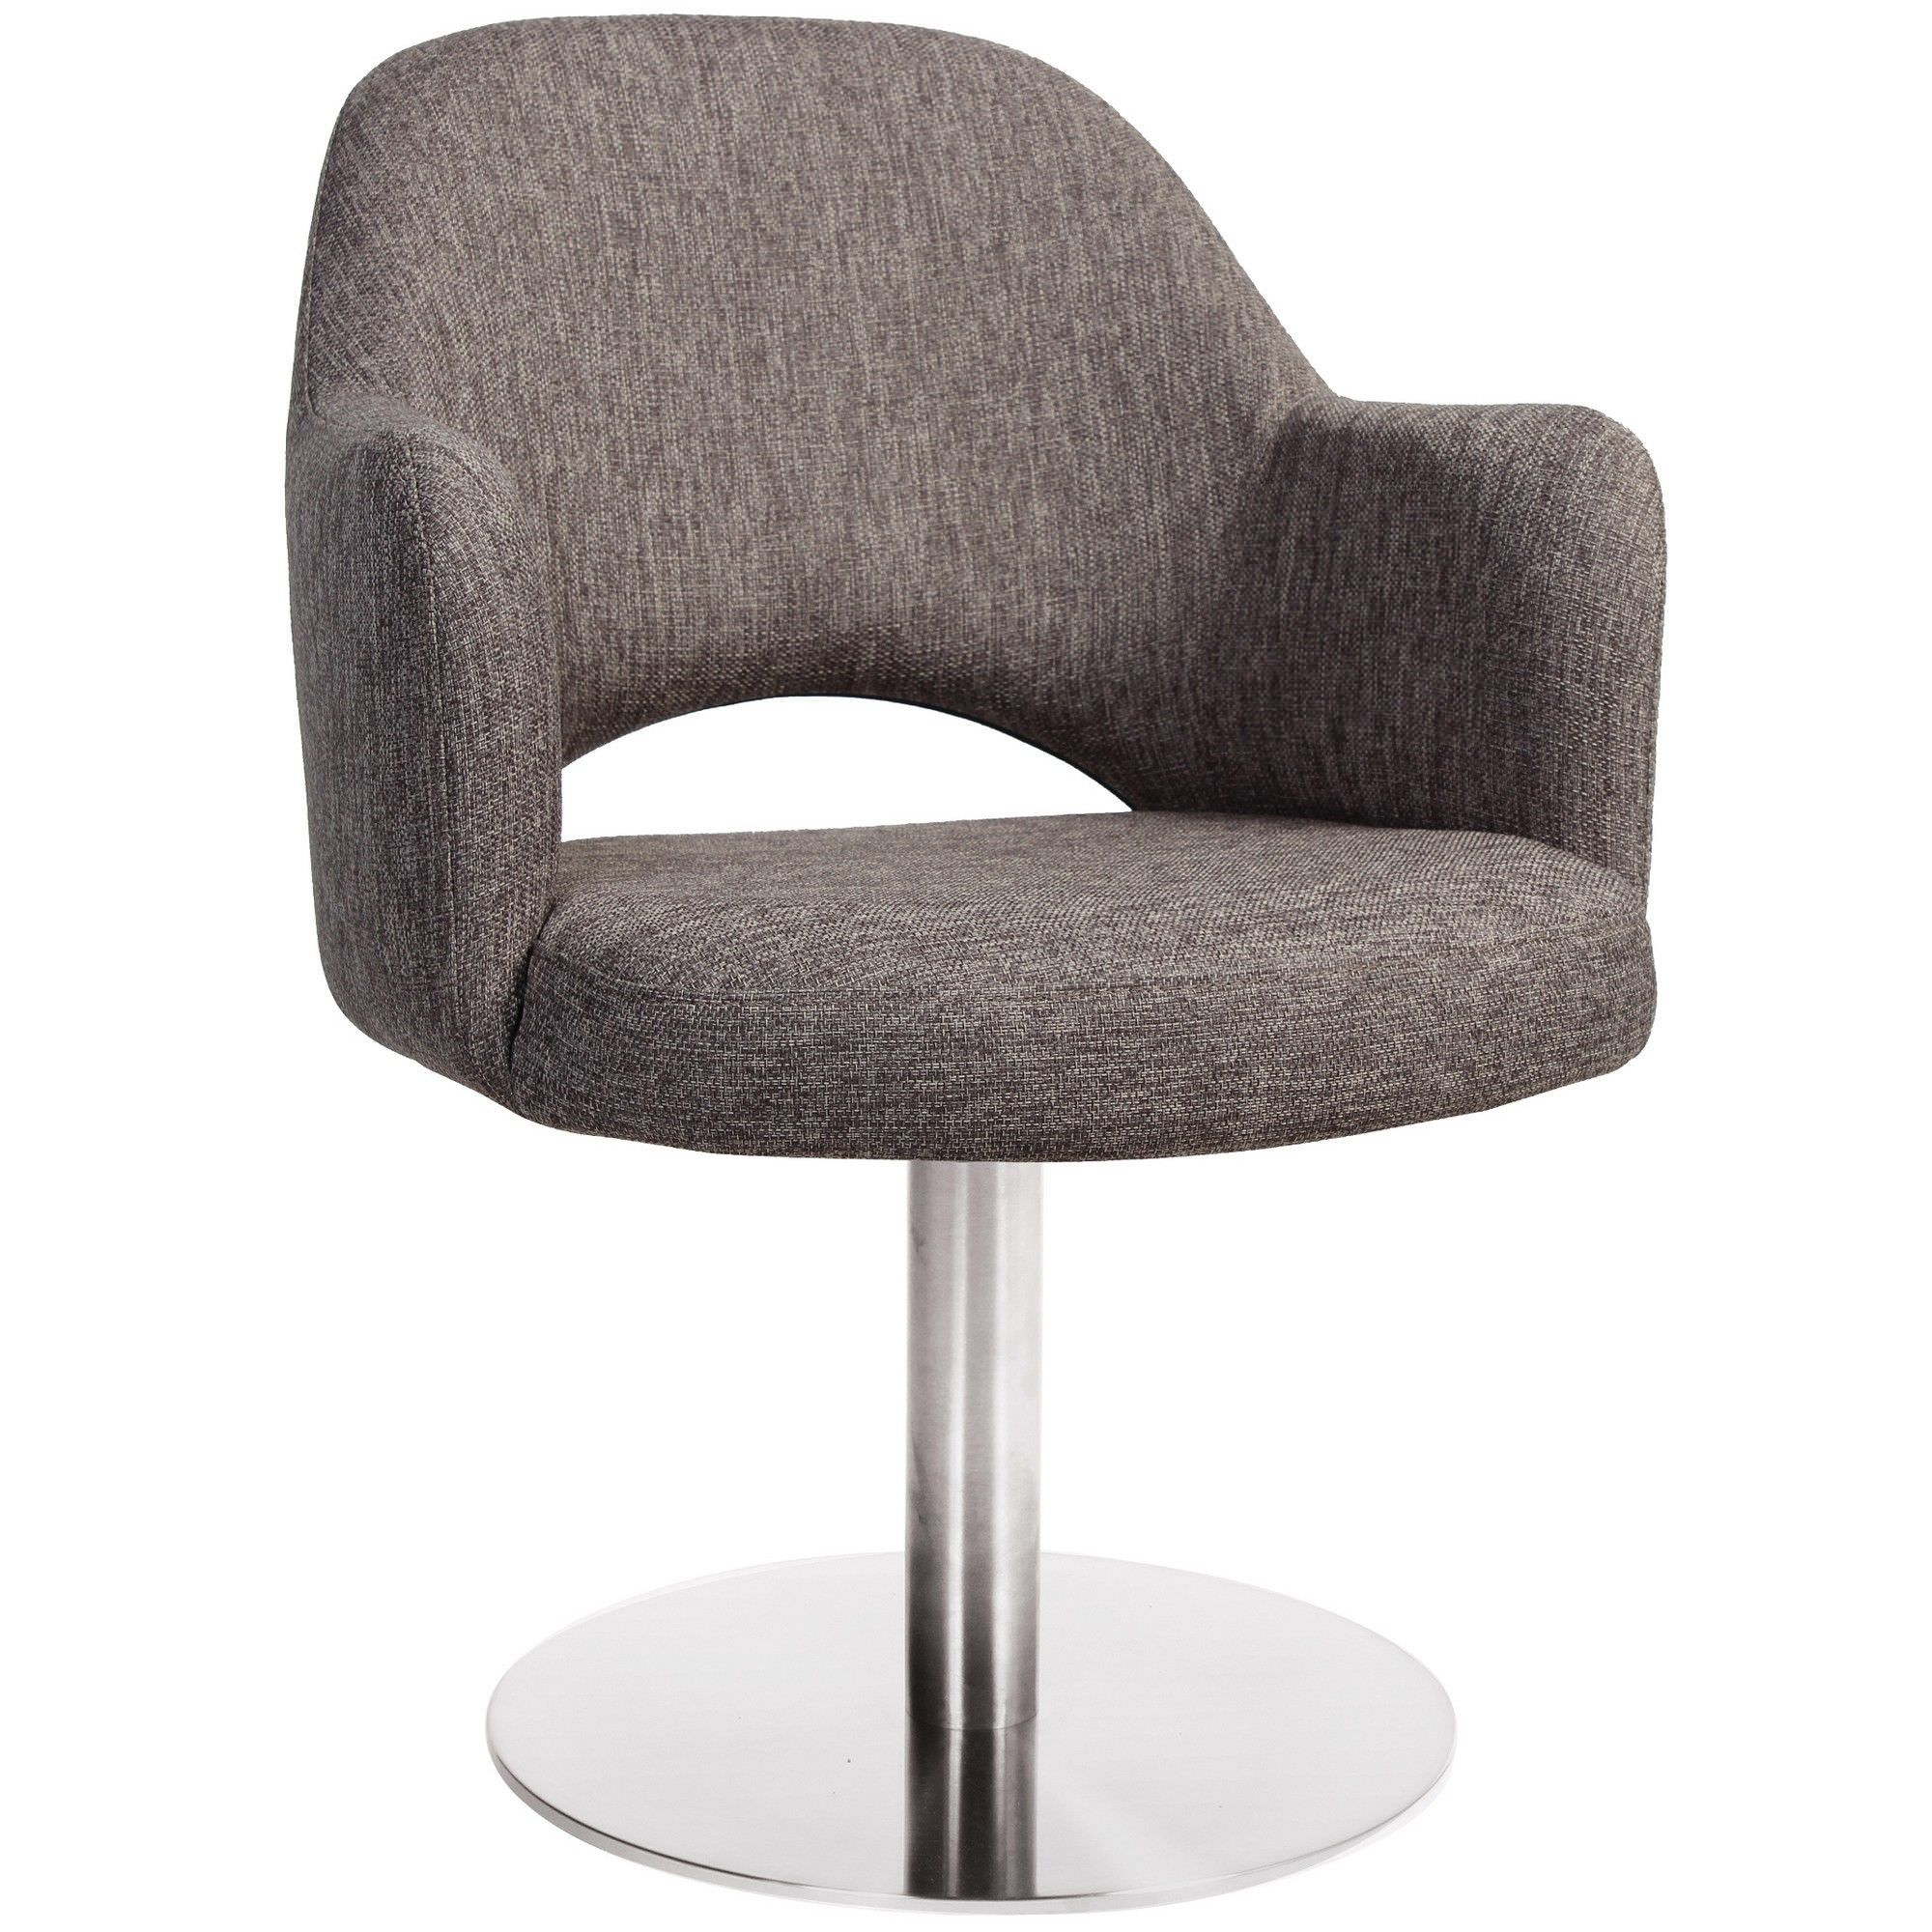 Albury Commercial Grade Fabric Dining Stool with Arm, Metal Disc Base, Ash Grey / Silver